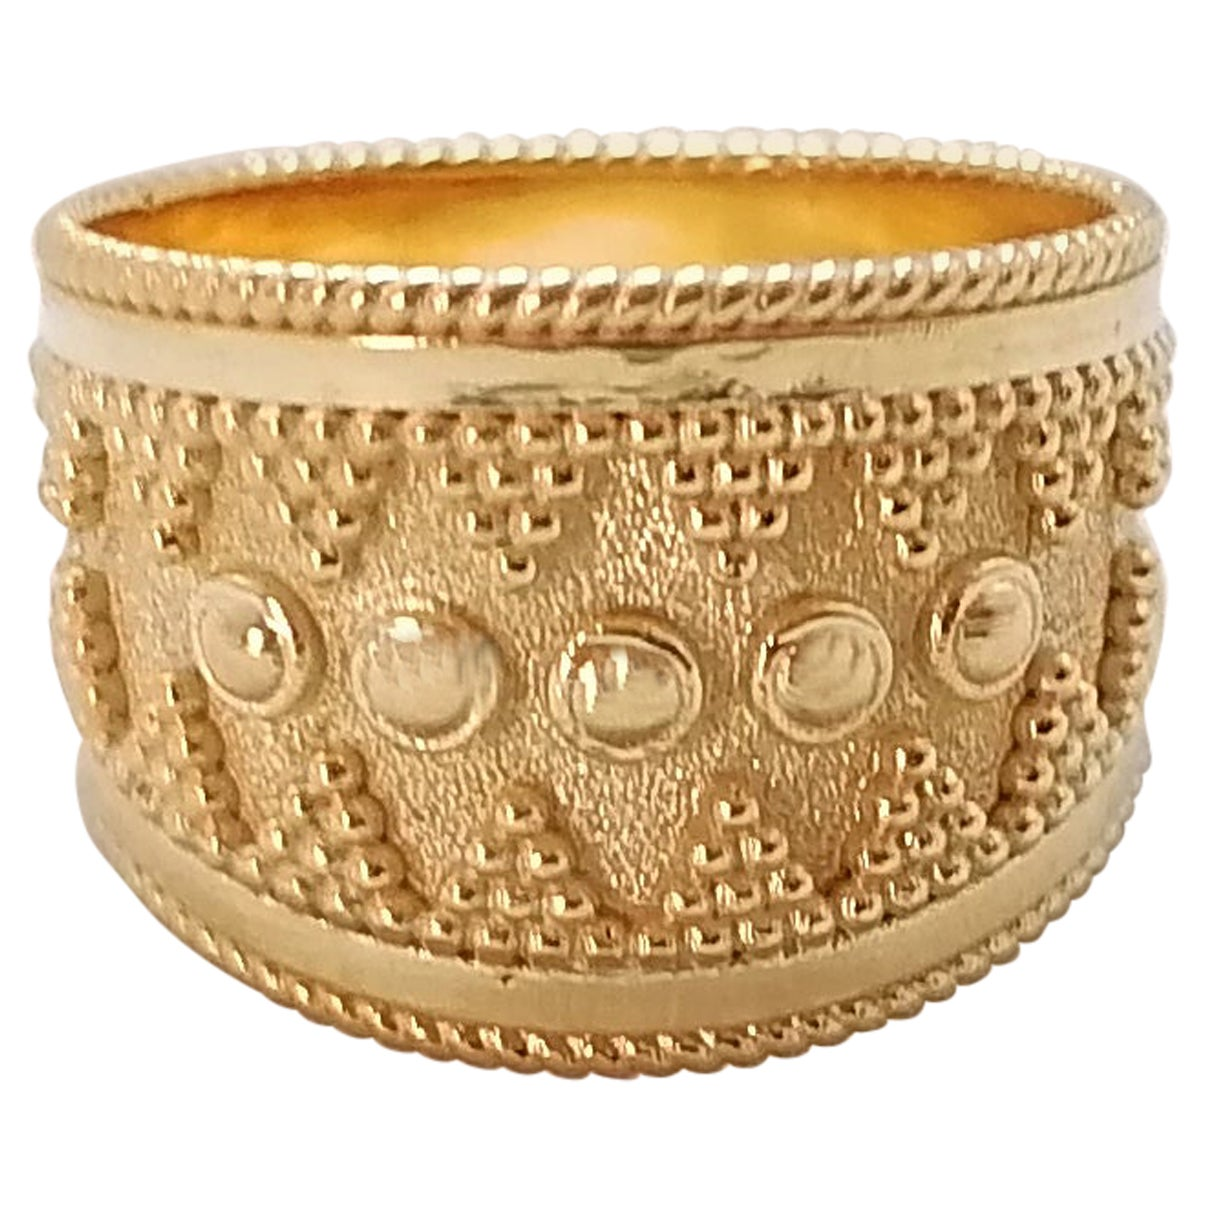 Georgios Collections 18 Karat Yellow Gold Byzantine-Style Wide Band Ring